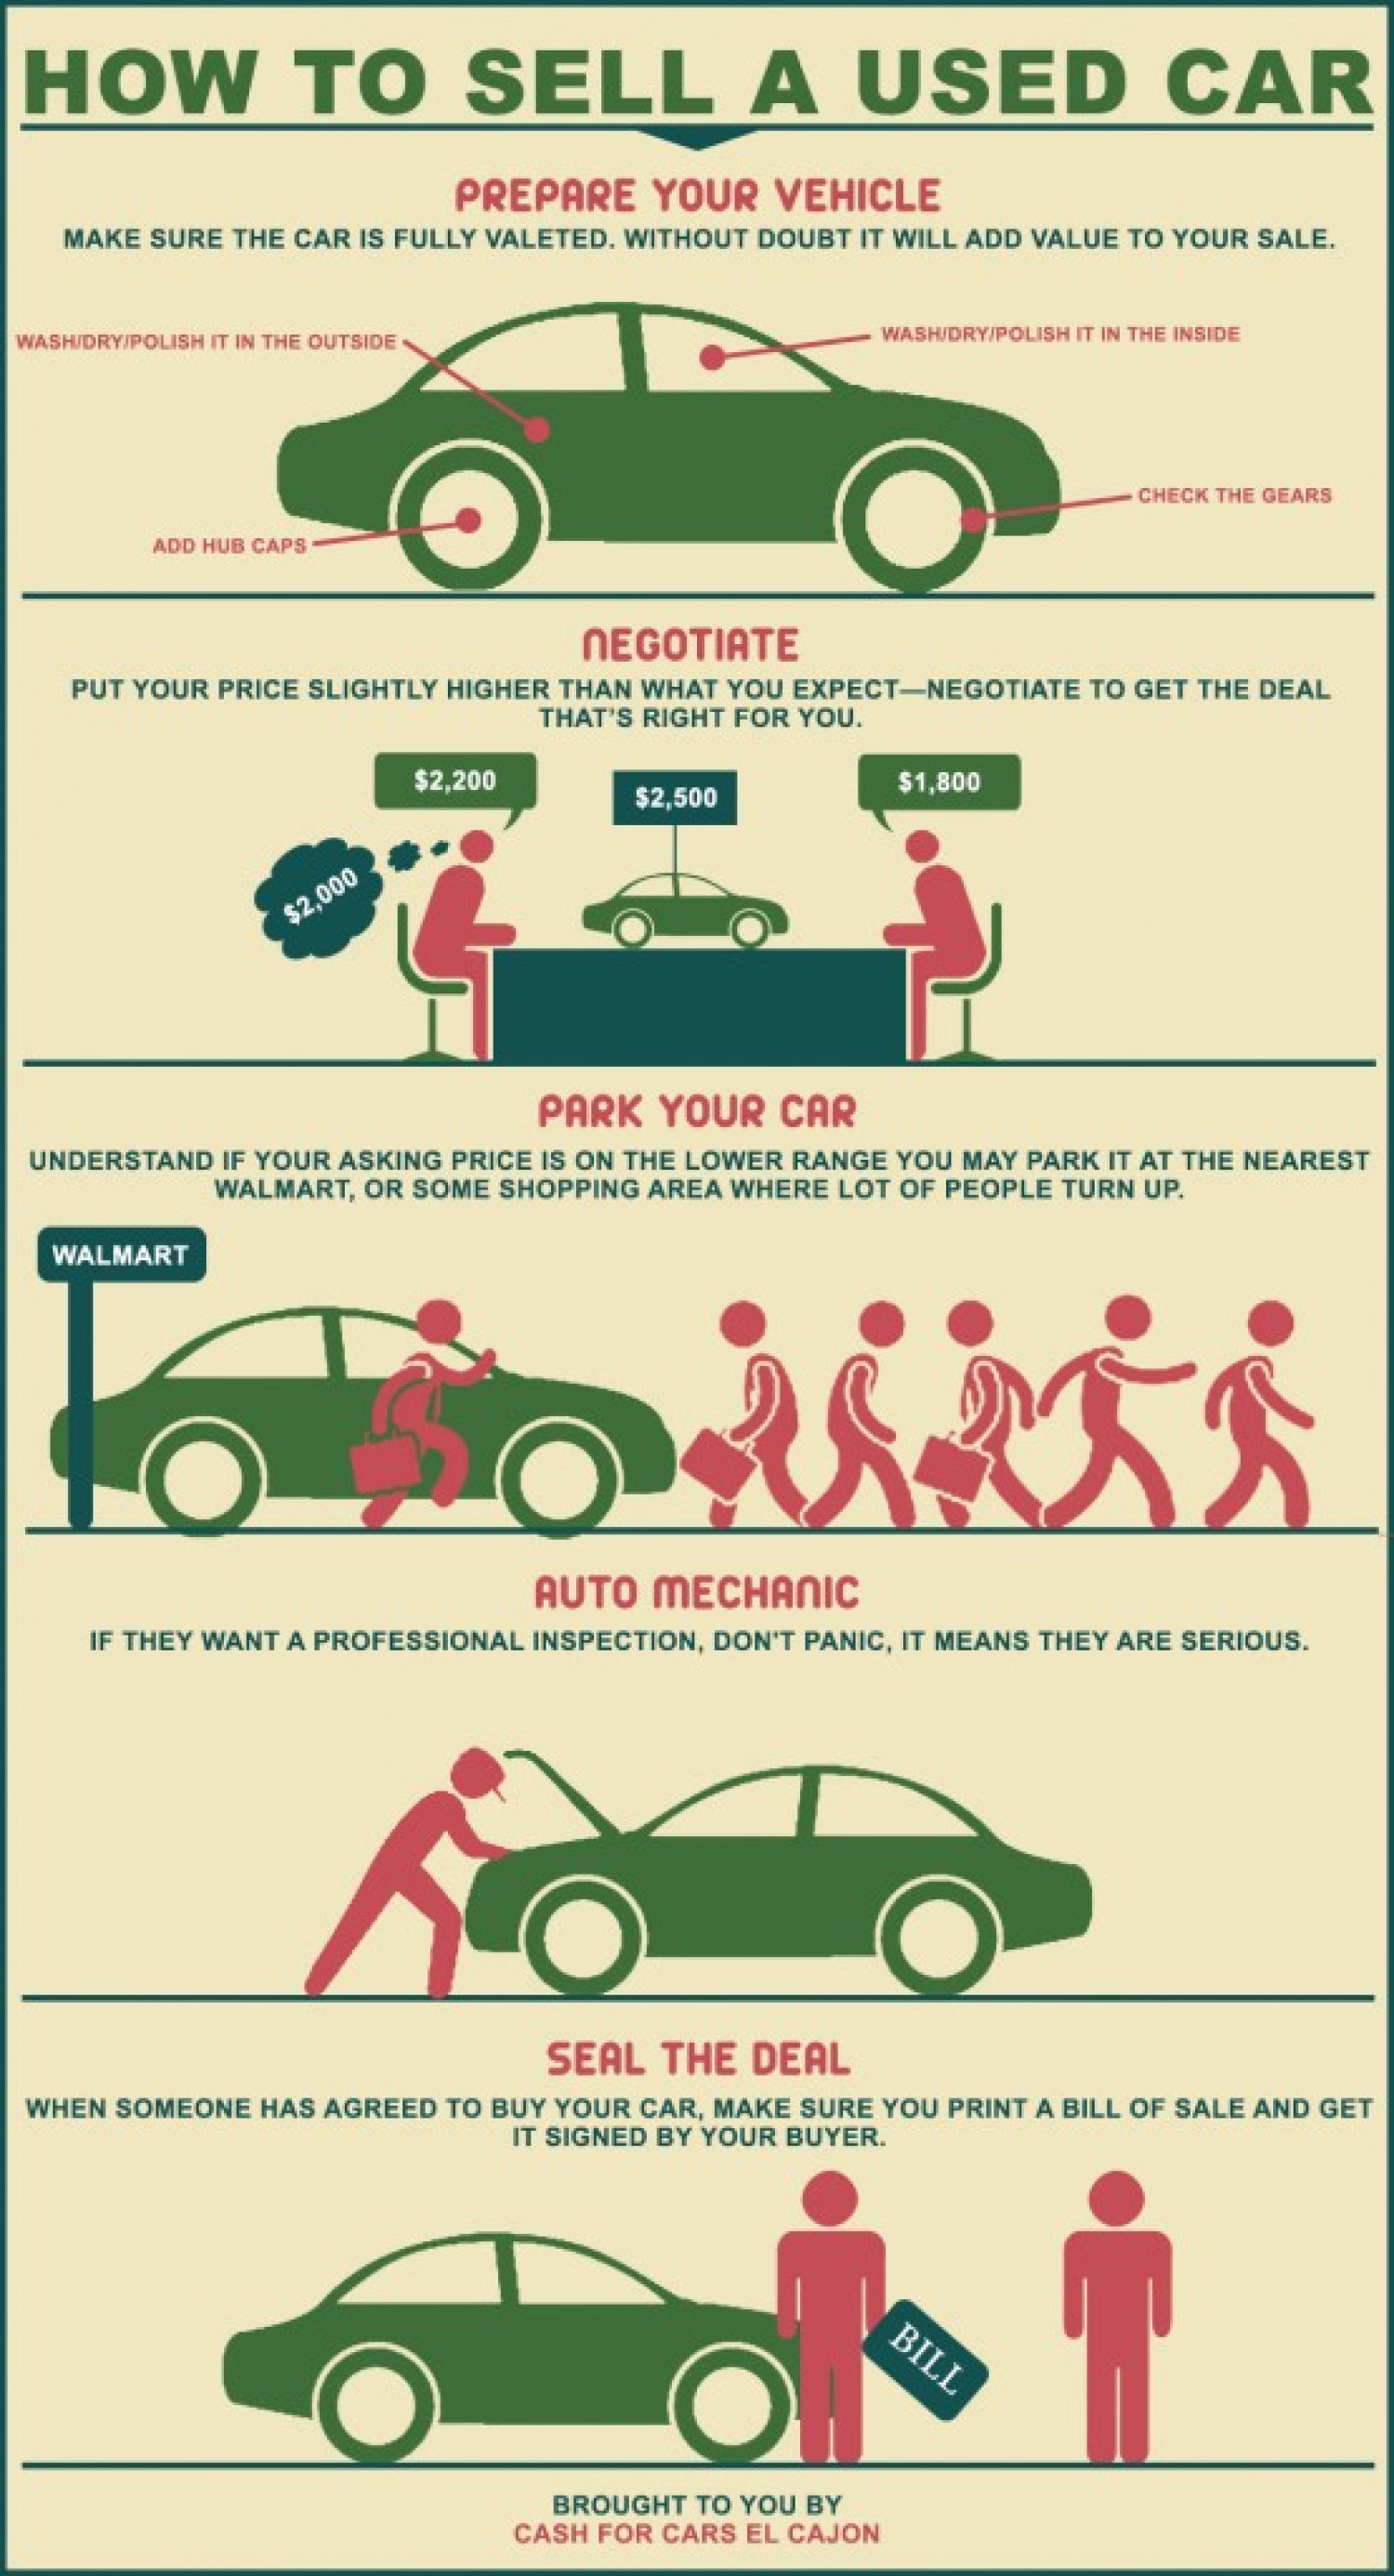 How To Sell A Used Car Infographic